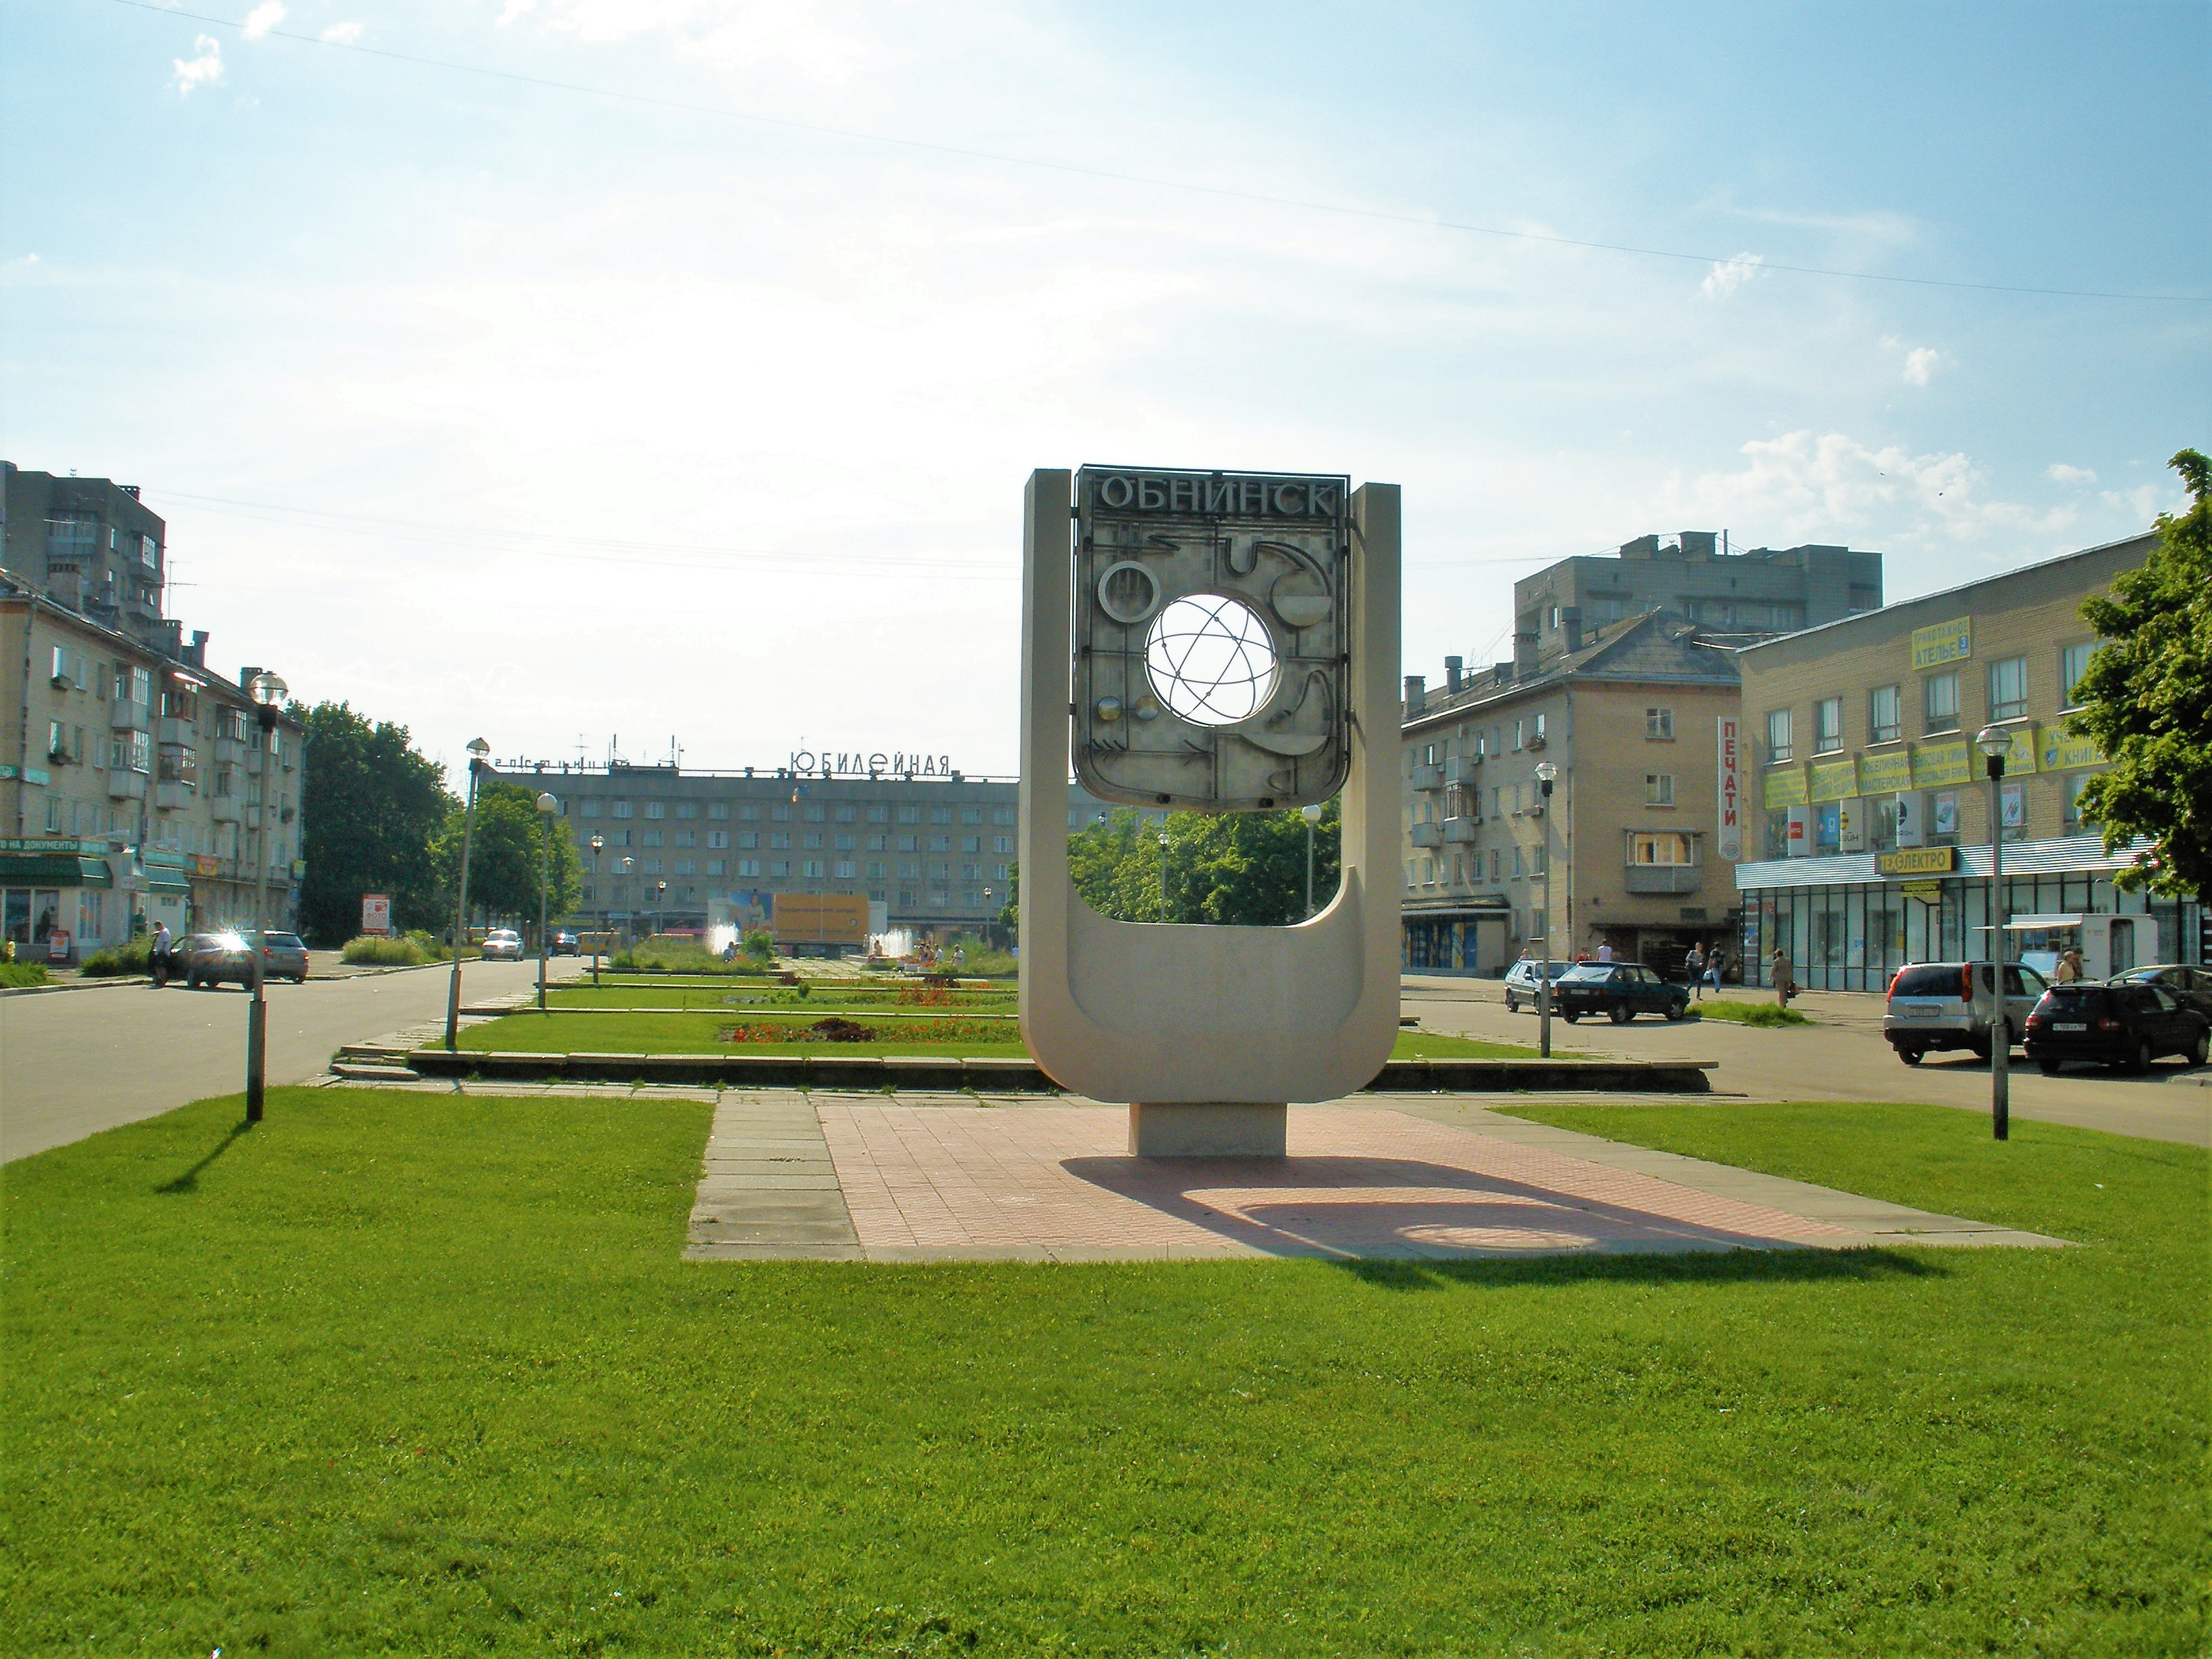 Obninsk Russia  city photos gallery : Obninsk, Russia 8170101 Wikimedia Commons